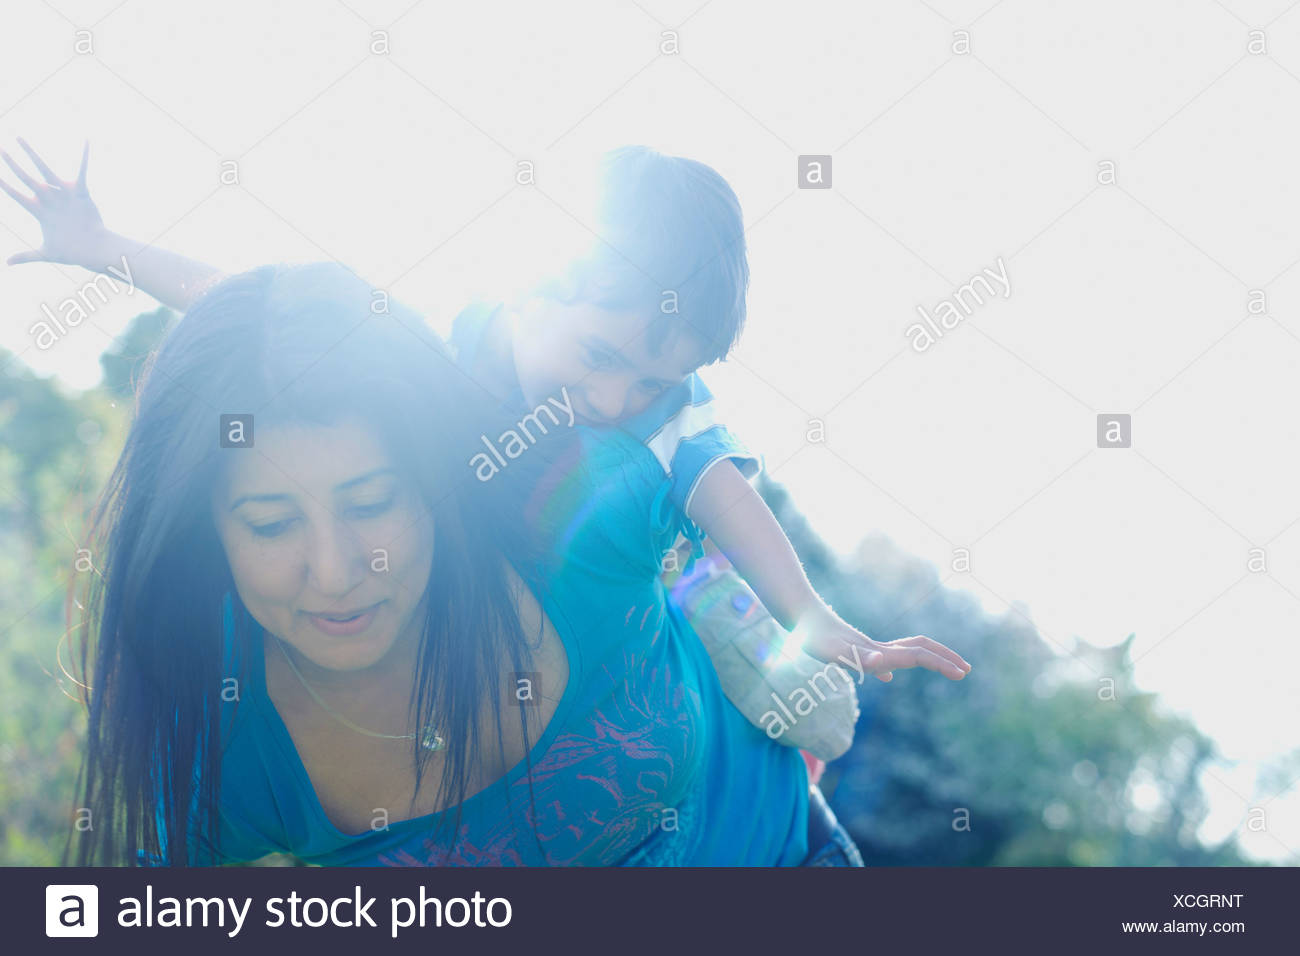 Boy riding on mother's back with arms stretched out - Stock Image